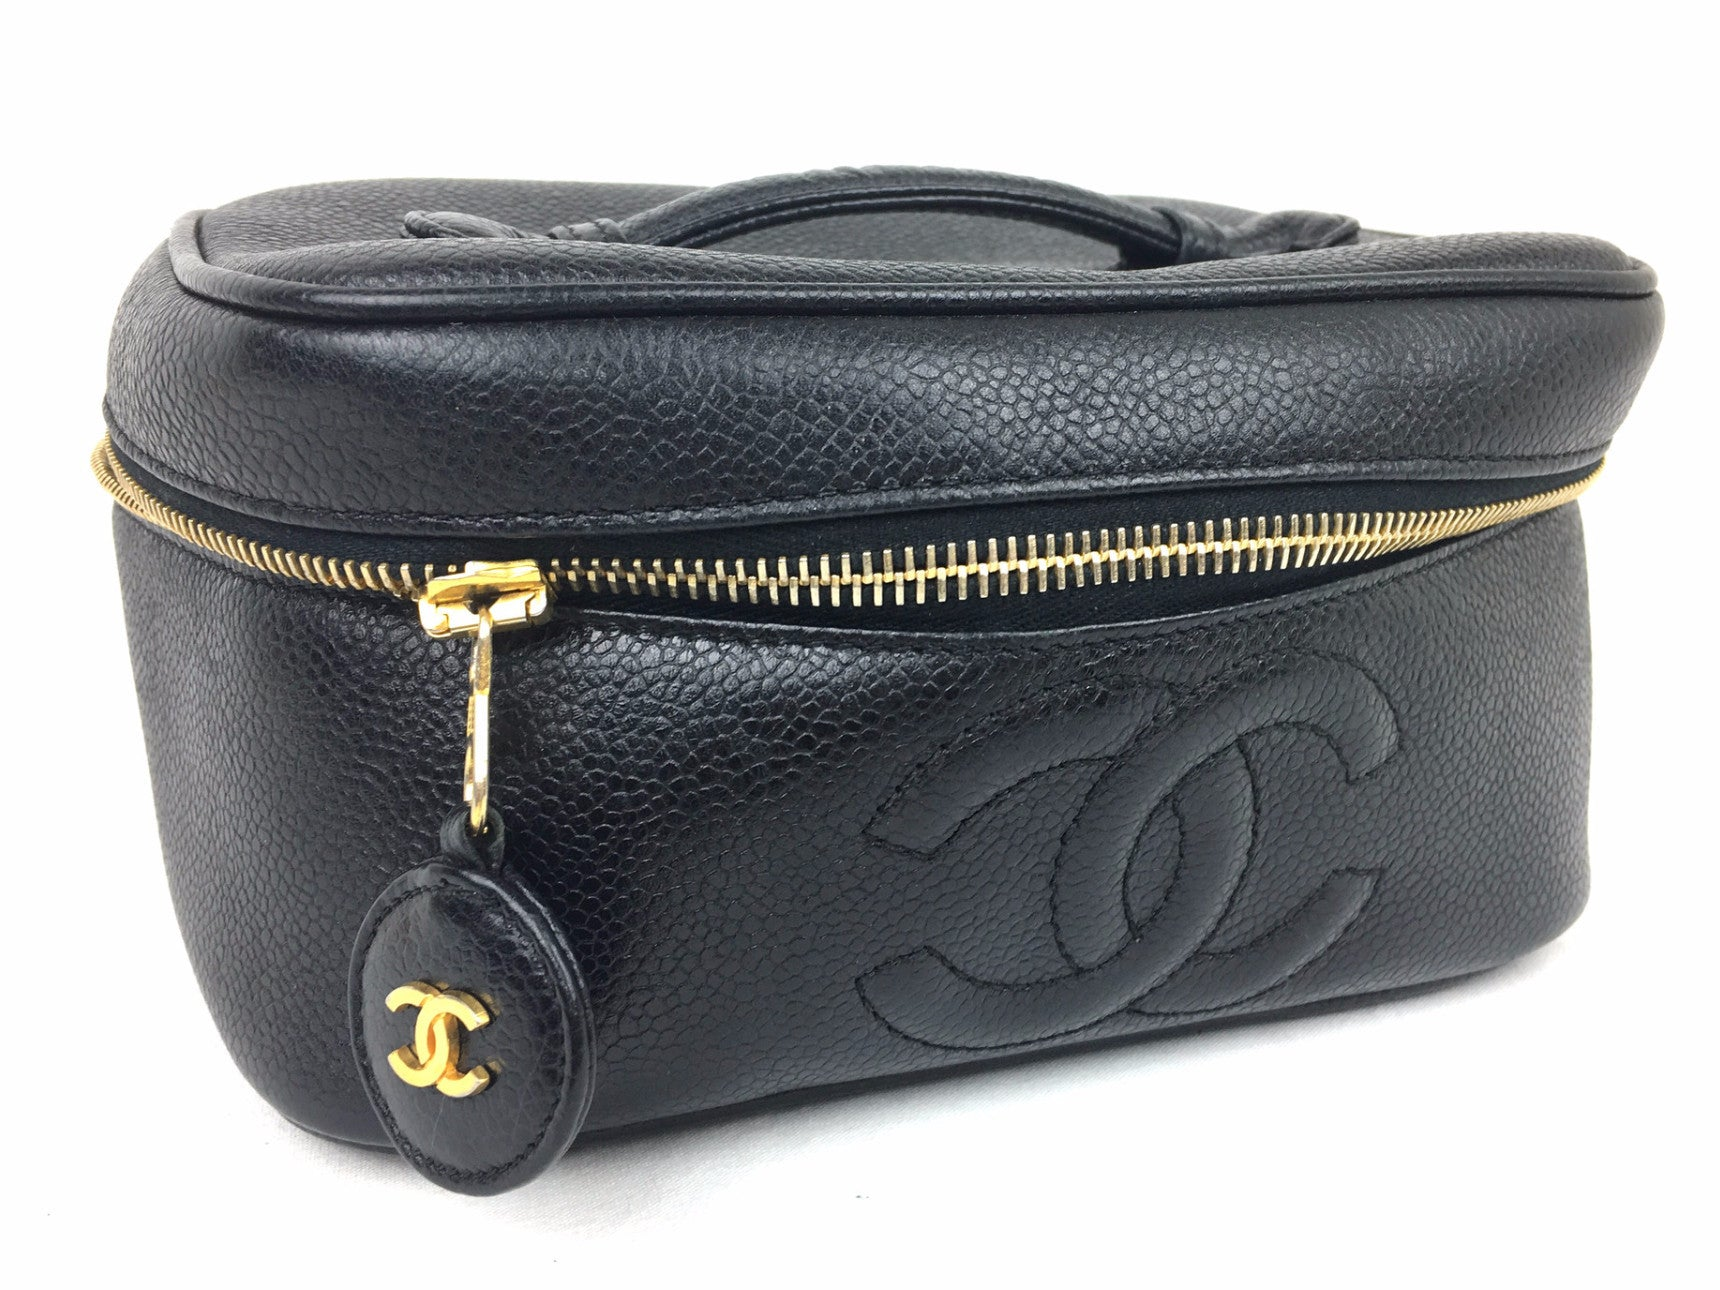 ebbd52a03b74 CHANEL Black Makeup Case (Caviar Leather) – Pretty Things Hoarder